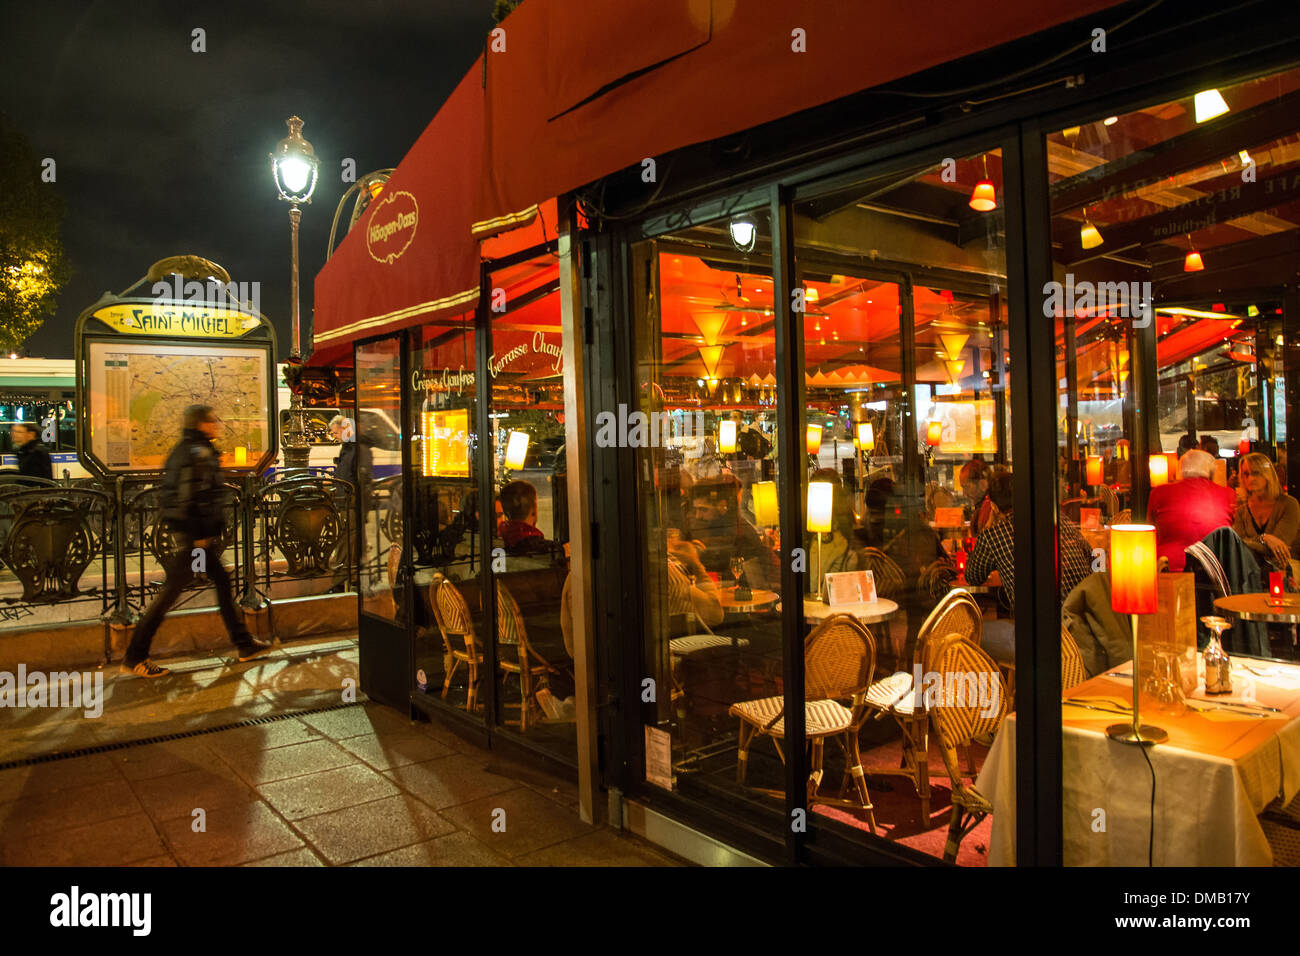 Lively nighttime ambiance cafe le depart saint michel and - Metro saint michel paris ...